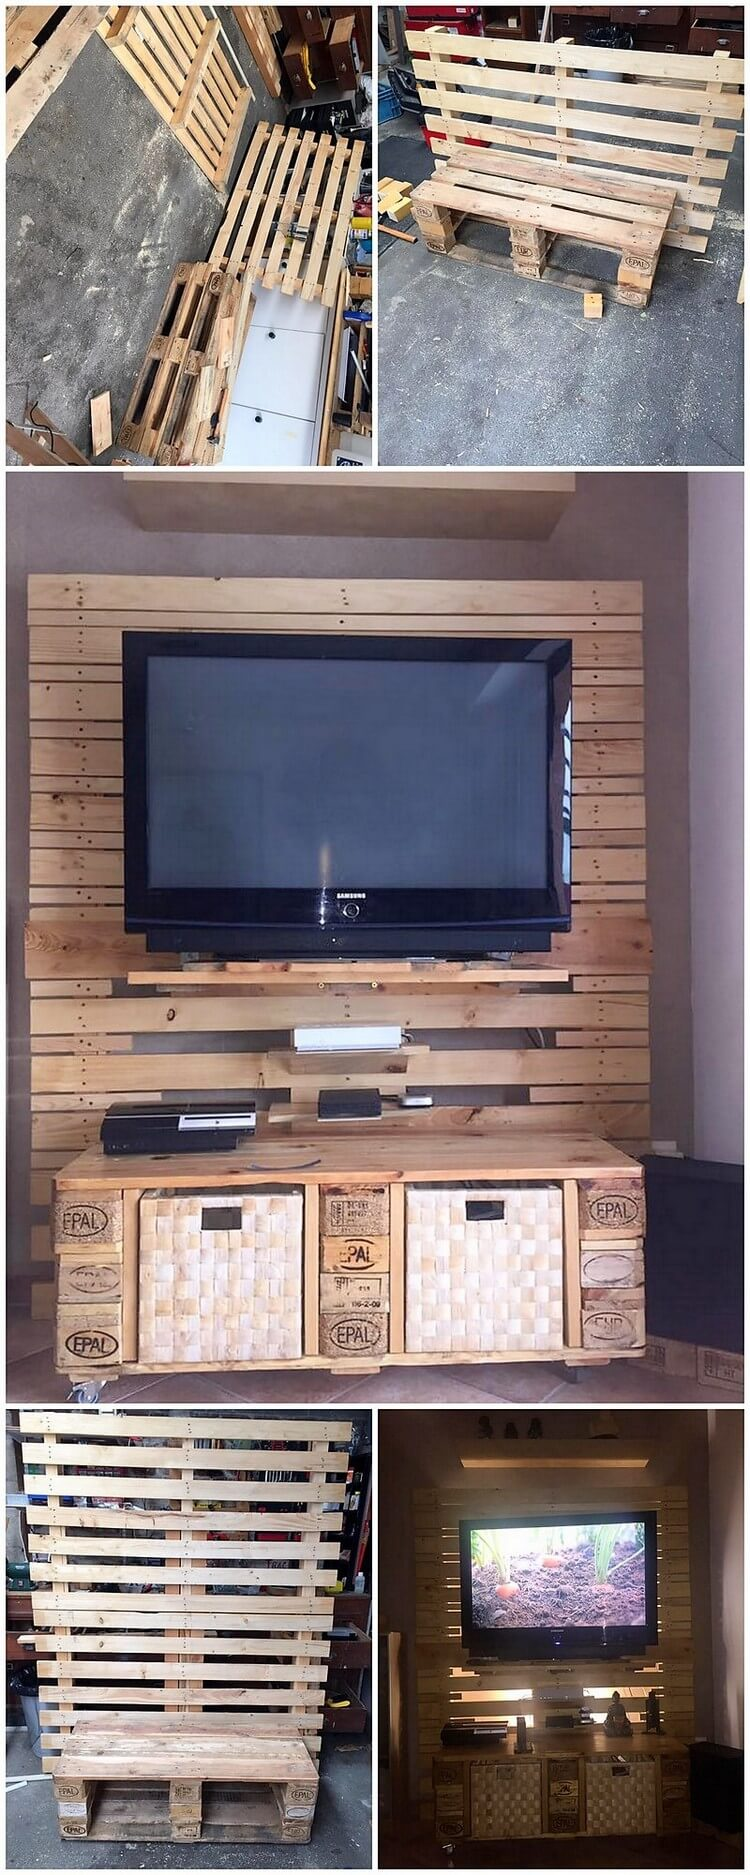 DIY Pallet Entertainment Center Step by Step Plan